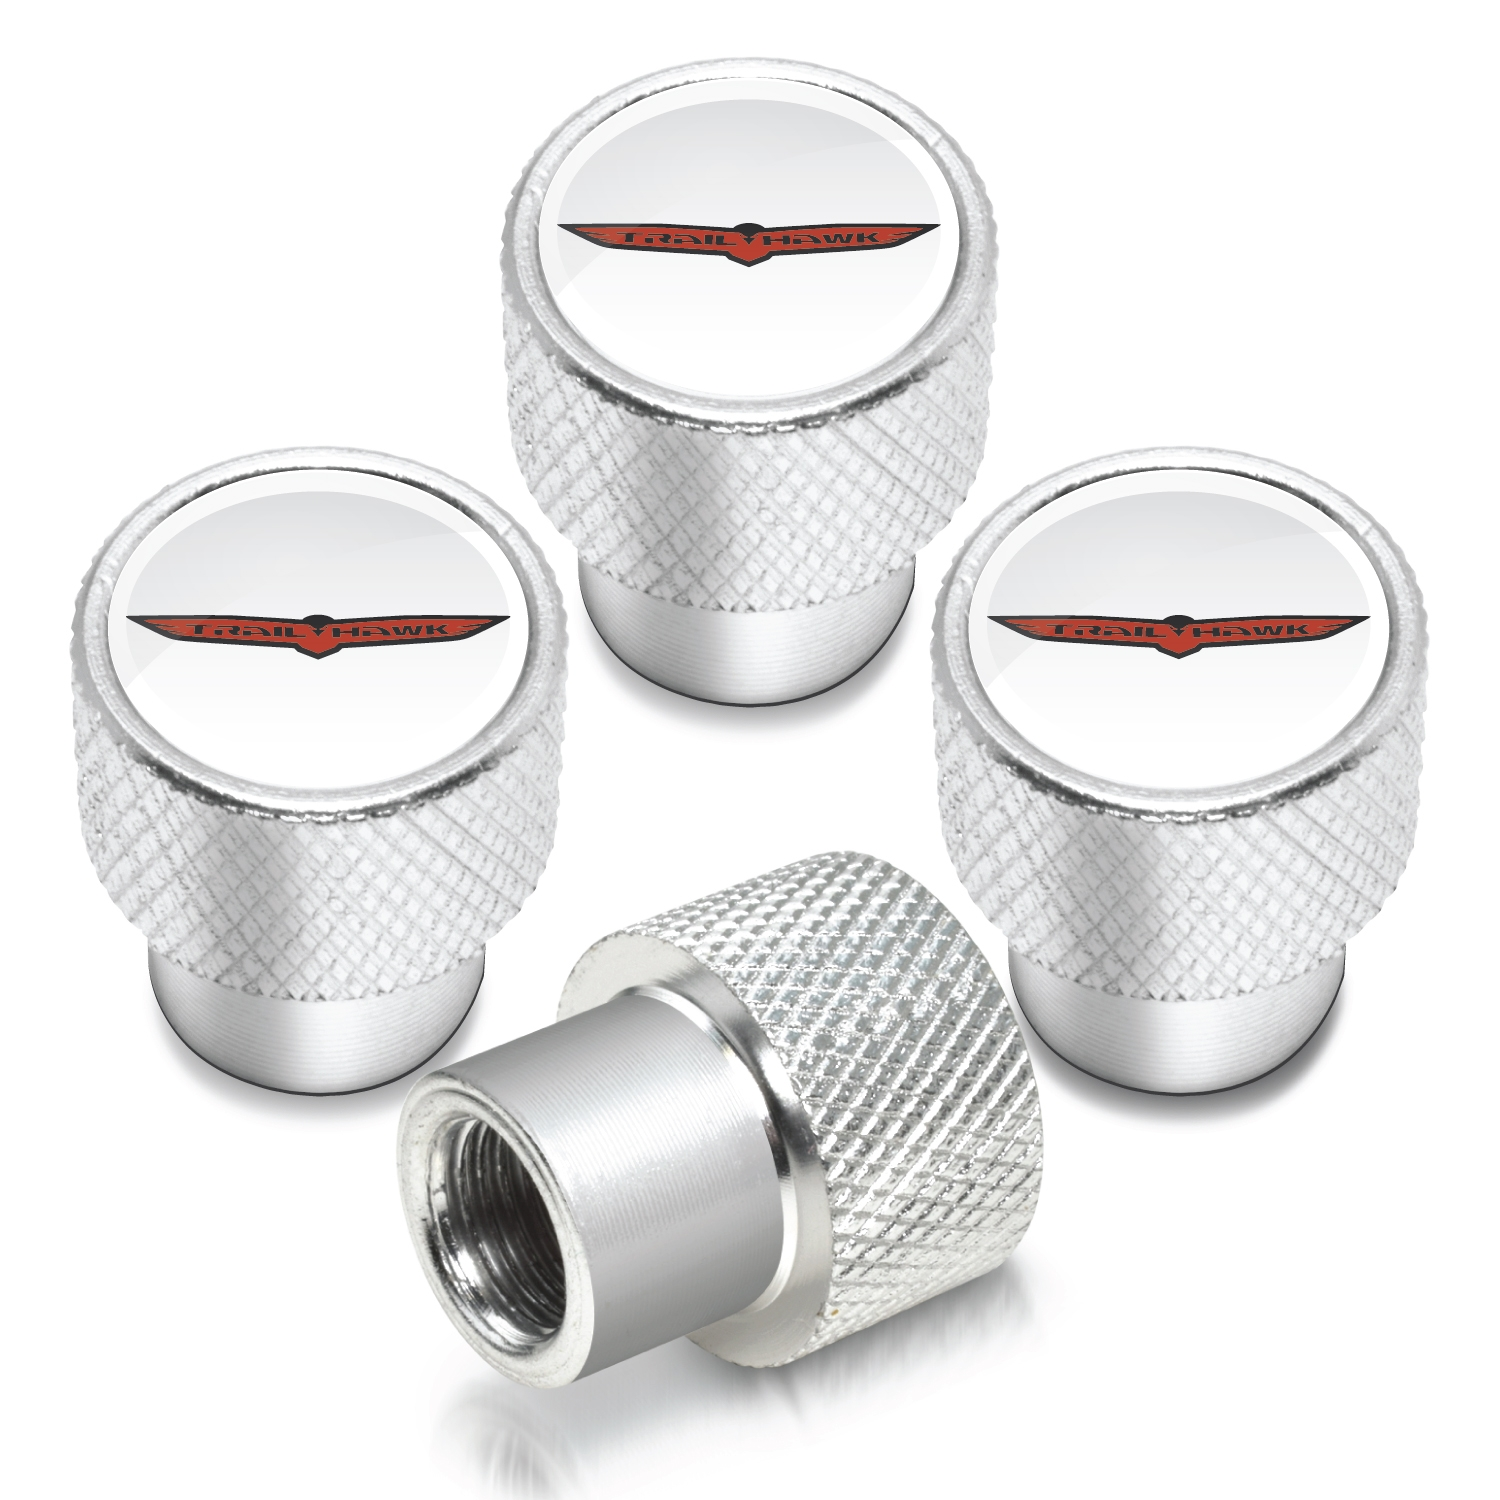 Jeep Trailhawk in White on Shining Silver Aluminum Tire Valve Stem Caps